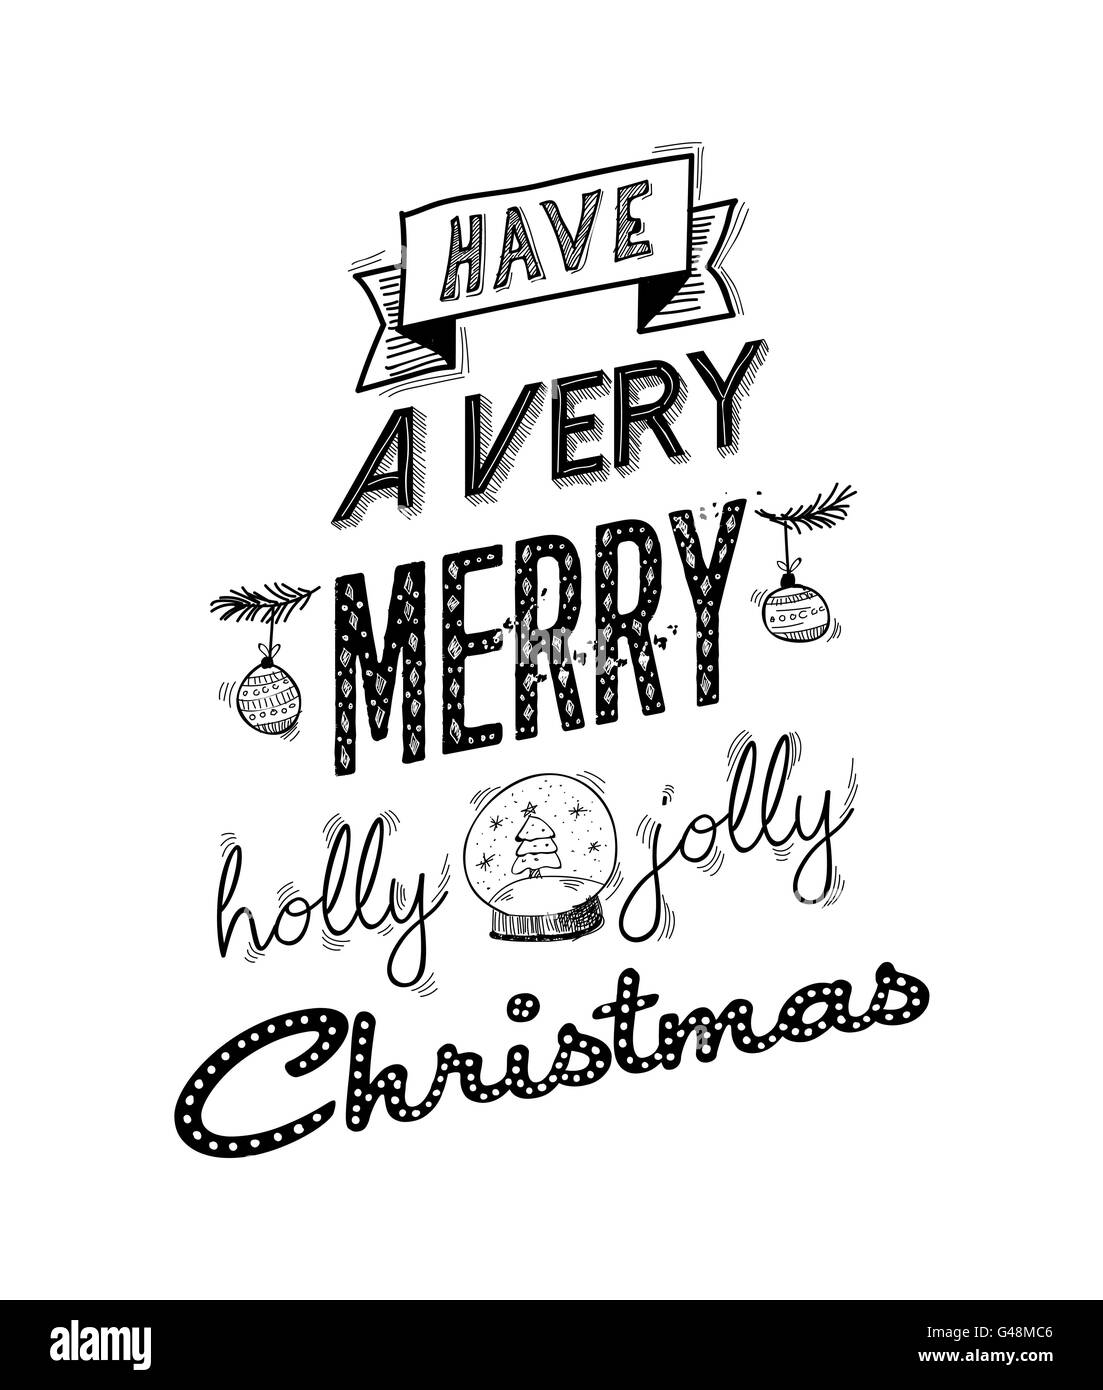 Merry christmas wish lettering handwritten design. Happy xmas wish ...